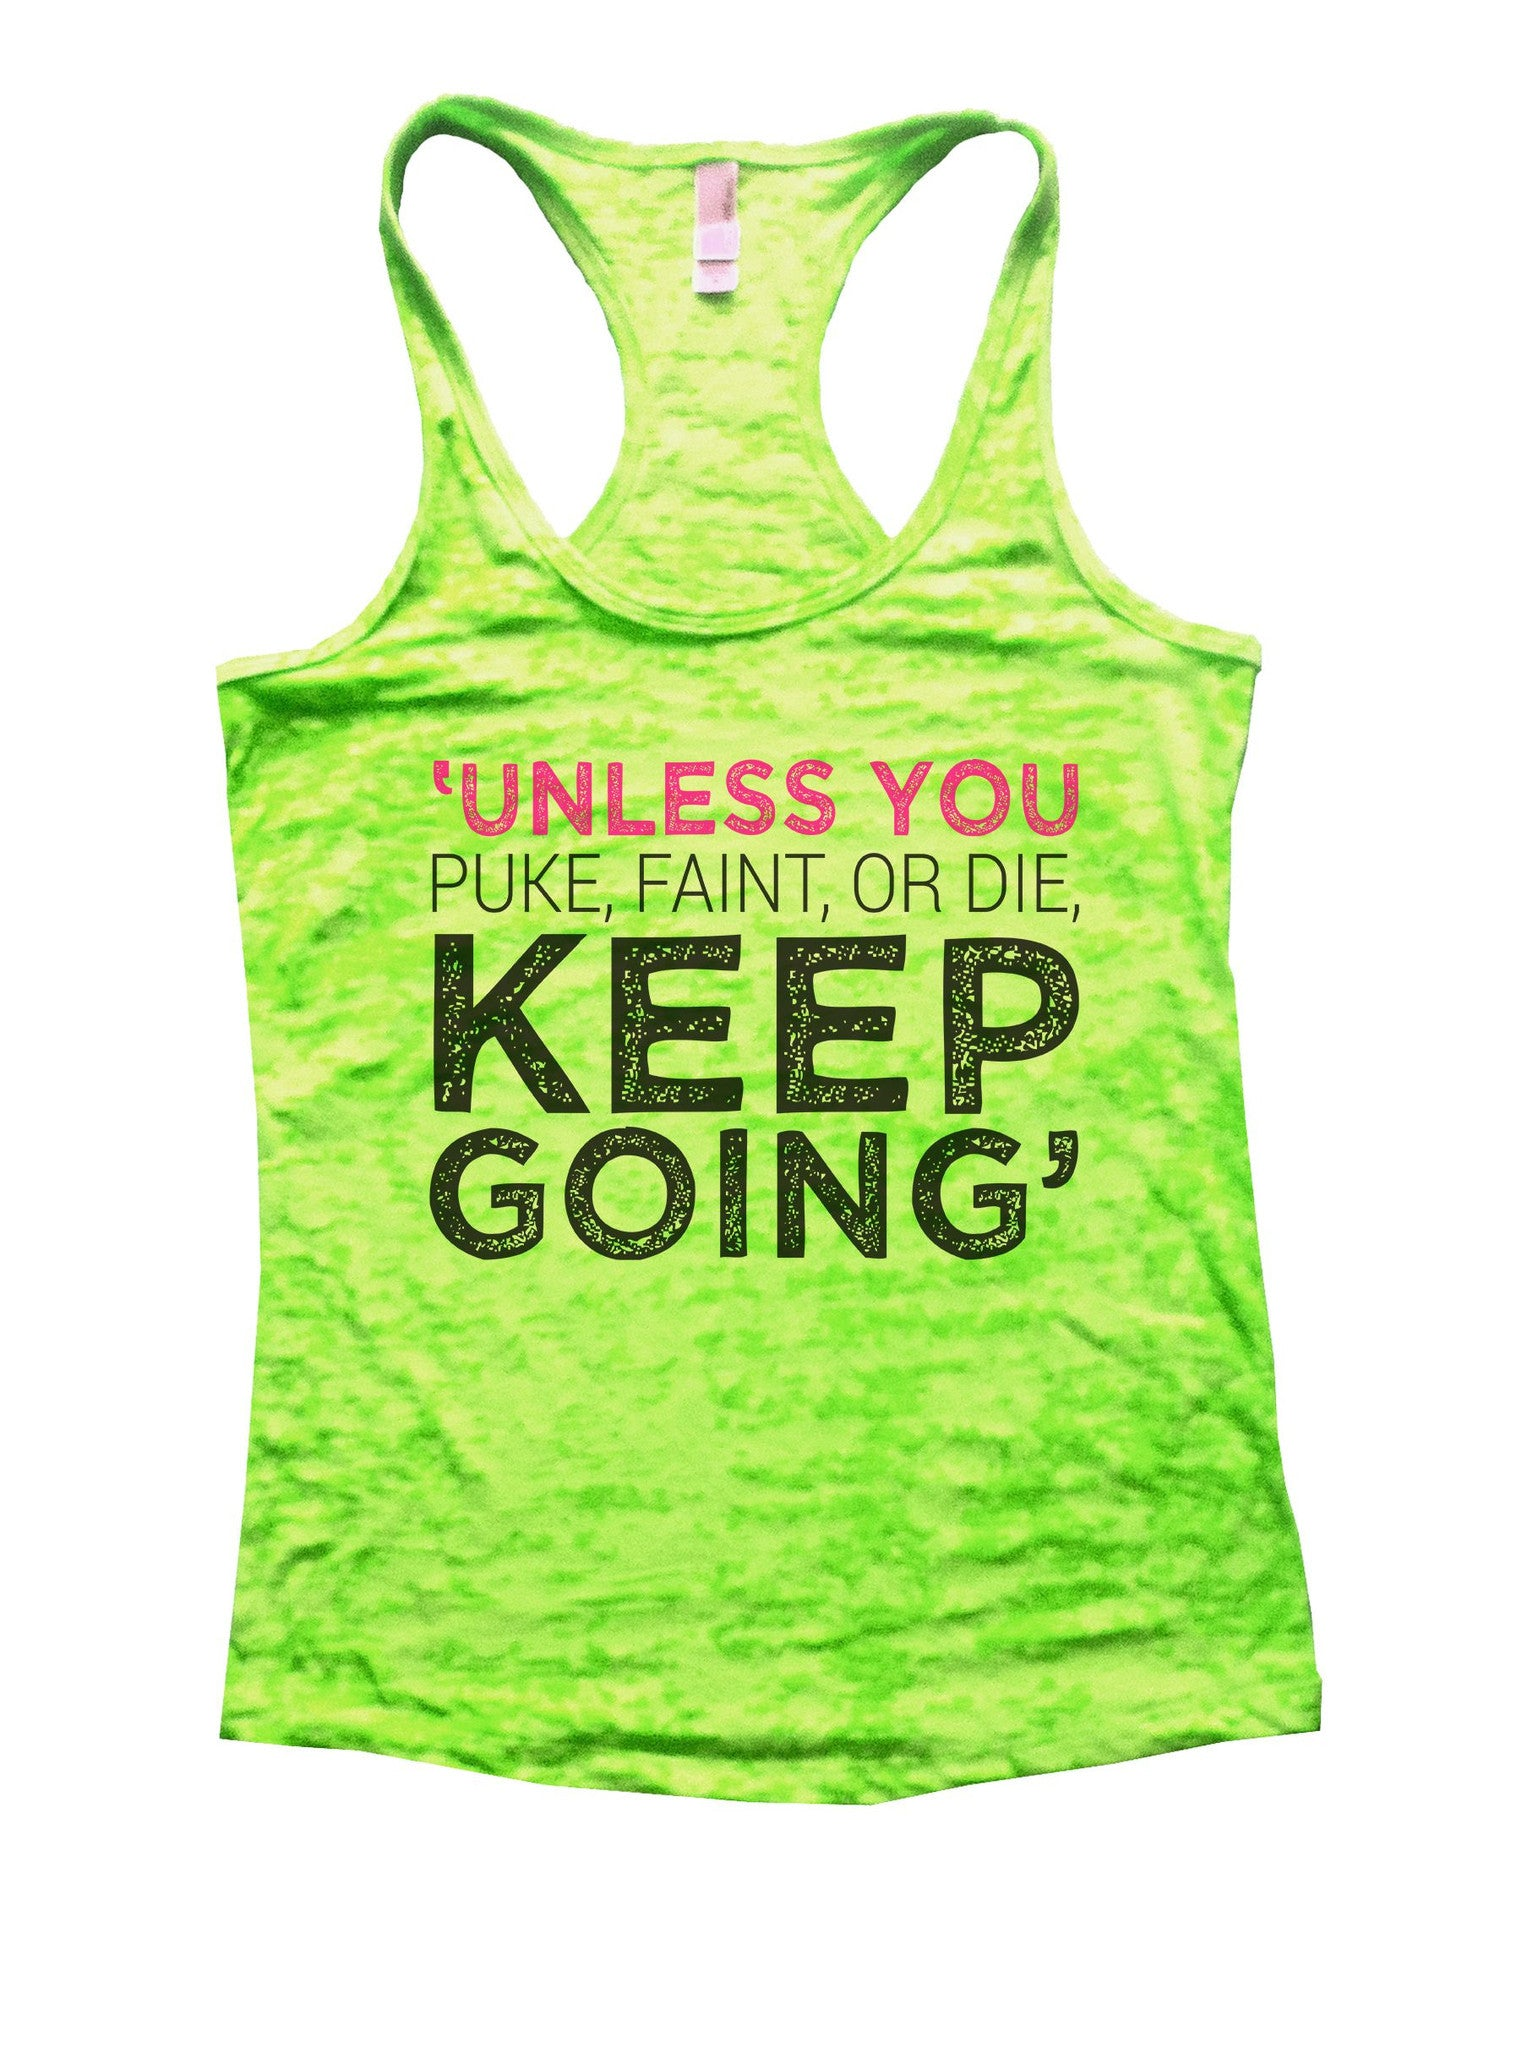 Unless You Puke, Faint, Or Die. Keep Going' Burnout Tank Top By BurnoutTankTops.com - 1104 - Funny Shirts Tank Tops Burnouts and Triblends  - 1